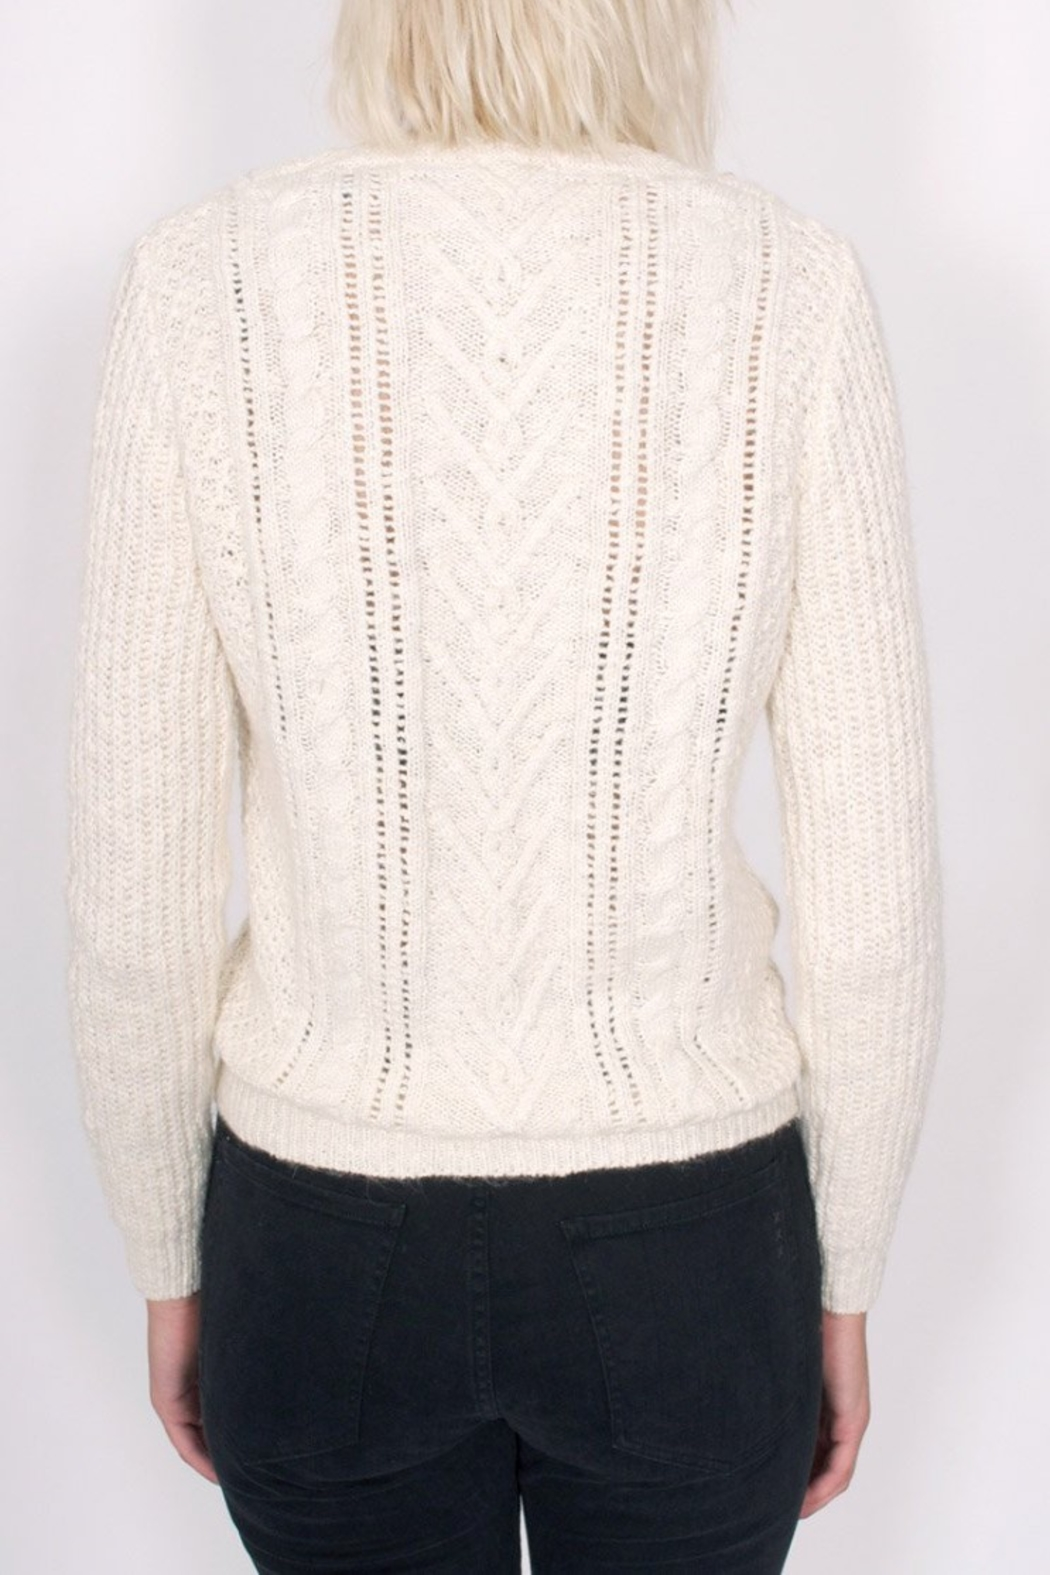 Maison Scotch Cable Stitched Sweater - Side Cropped Image